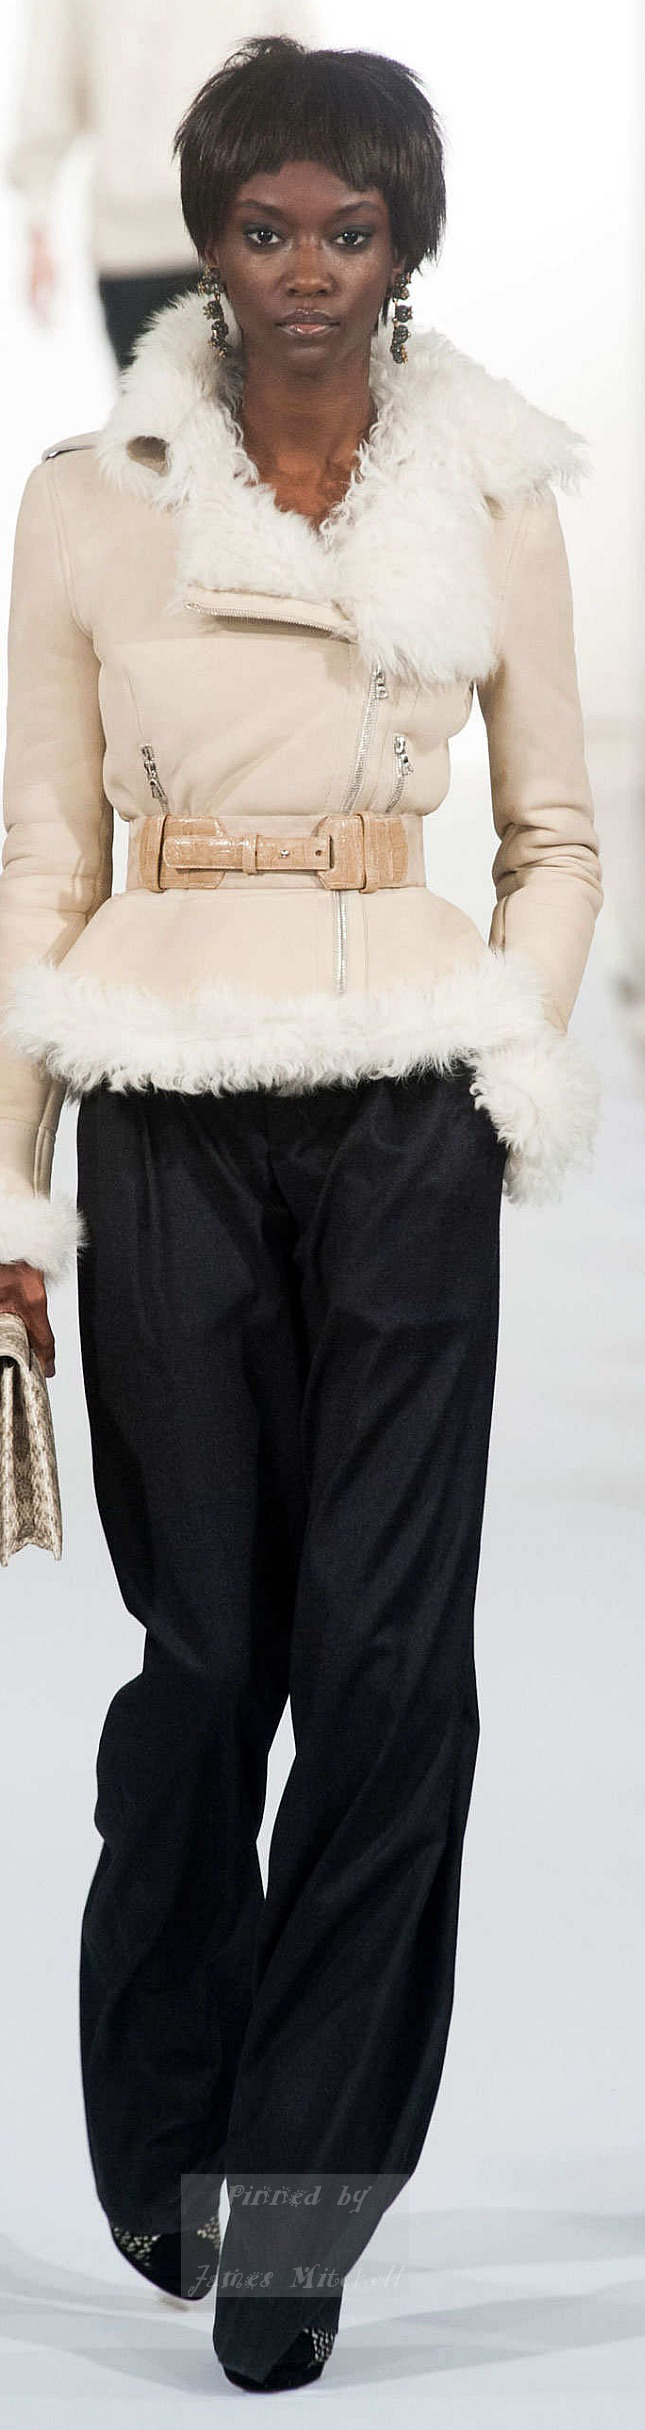 Oscar de la Renta Collection Fall 2014